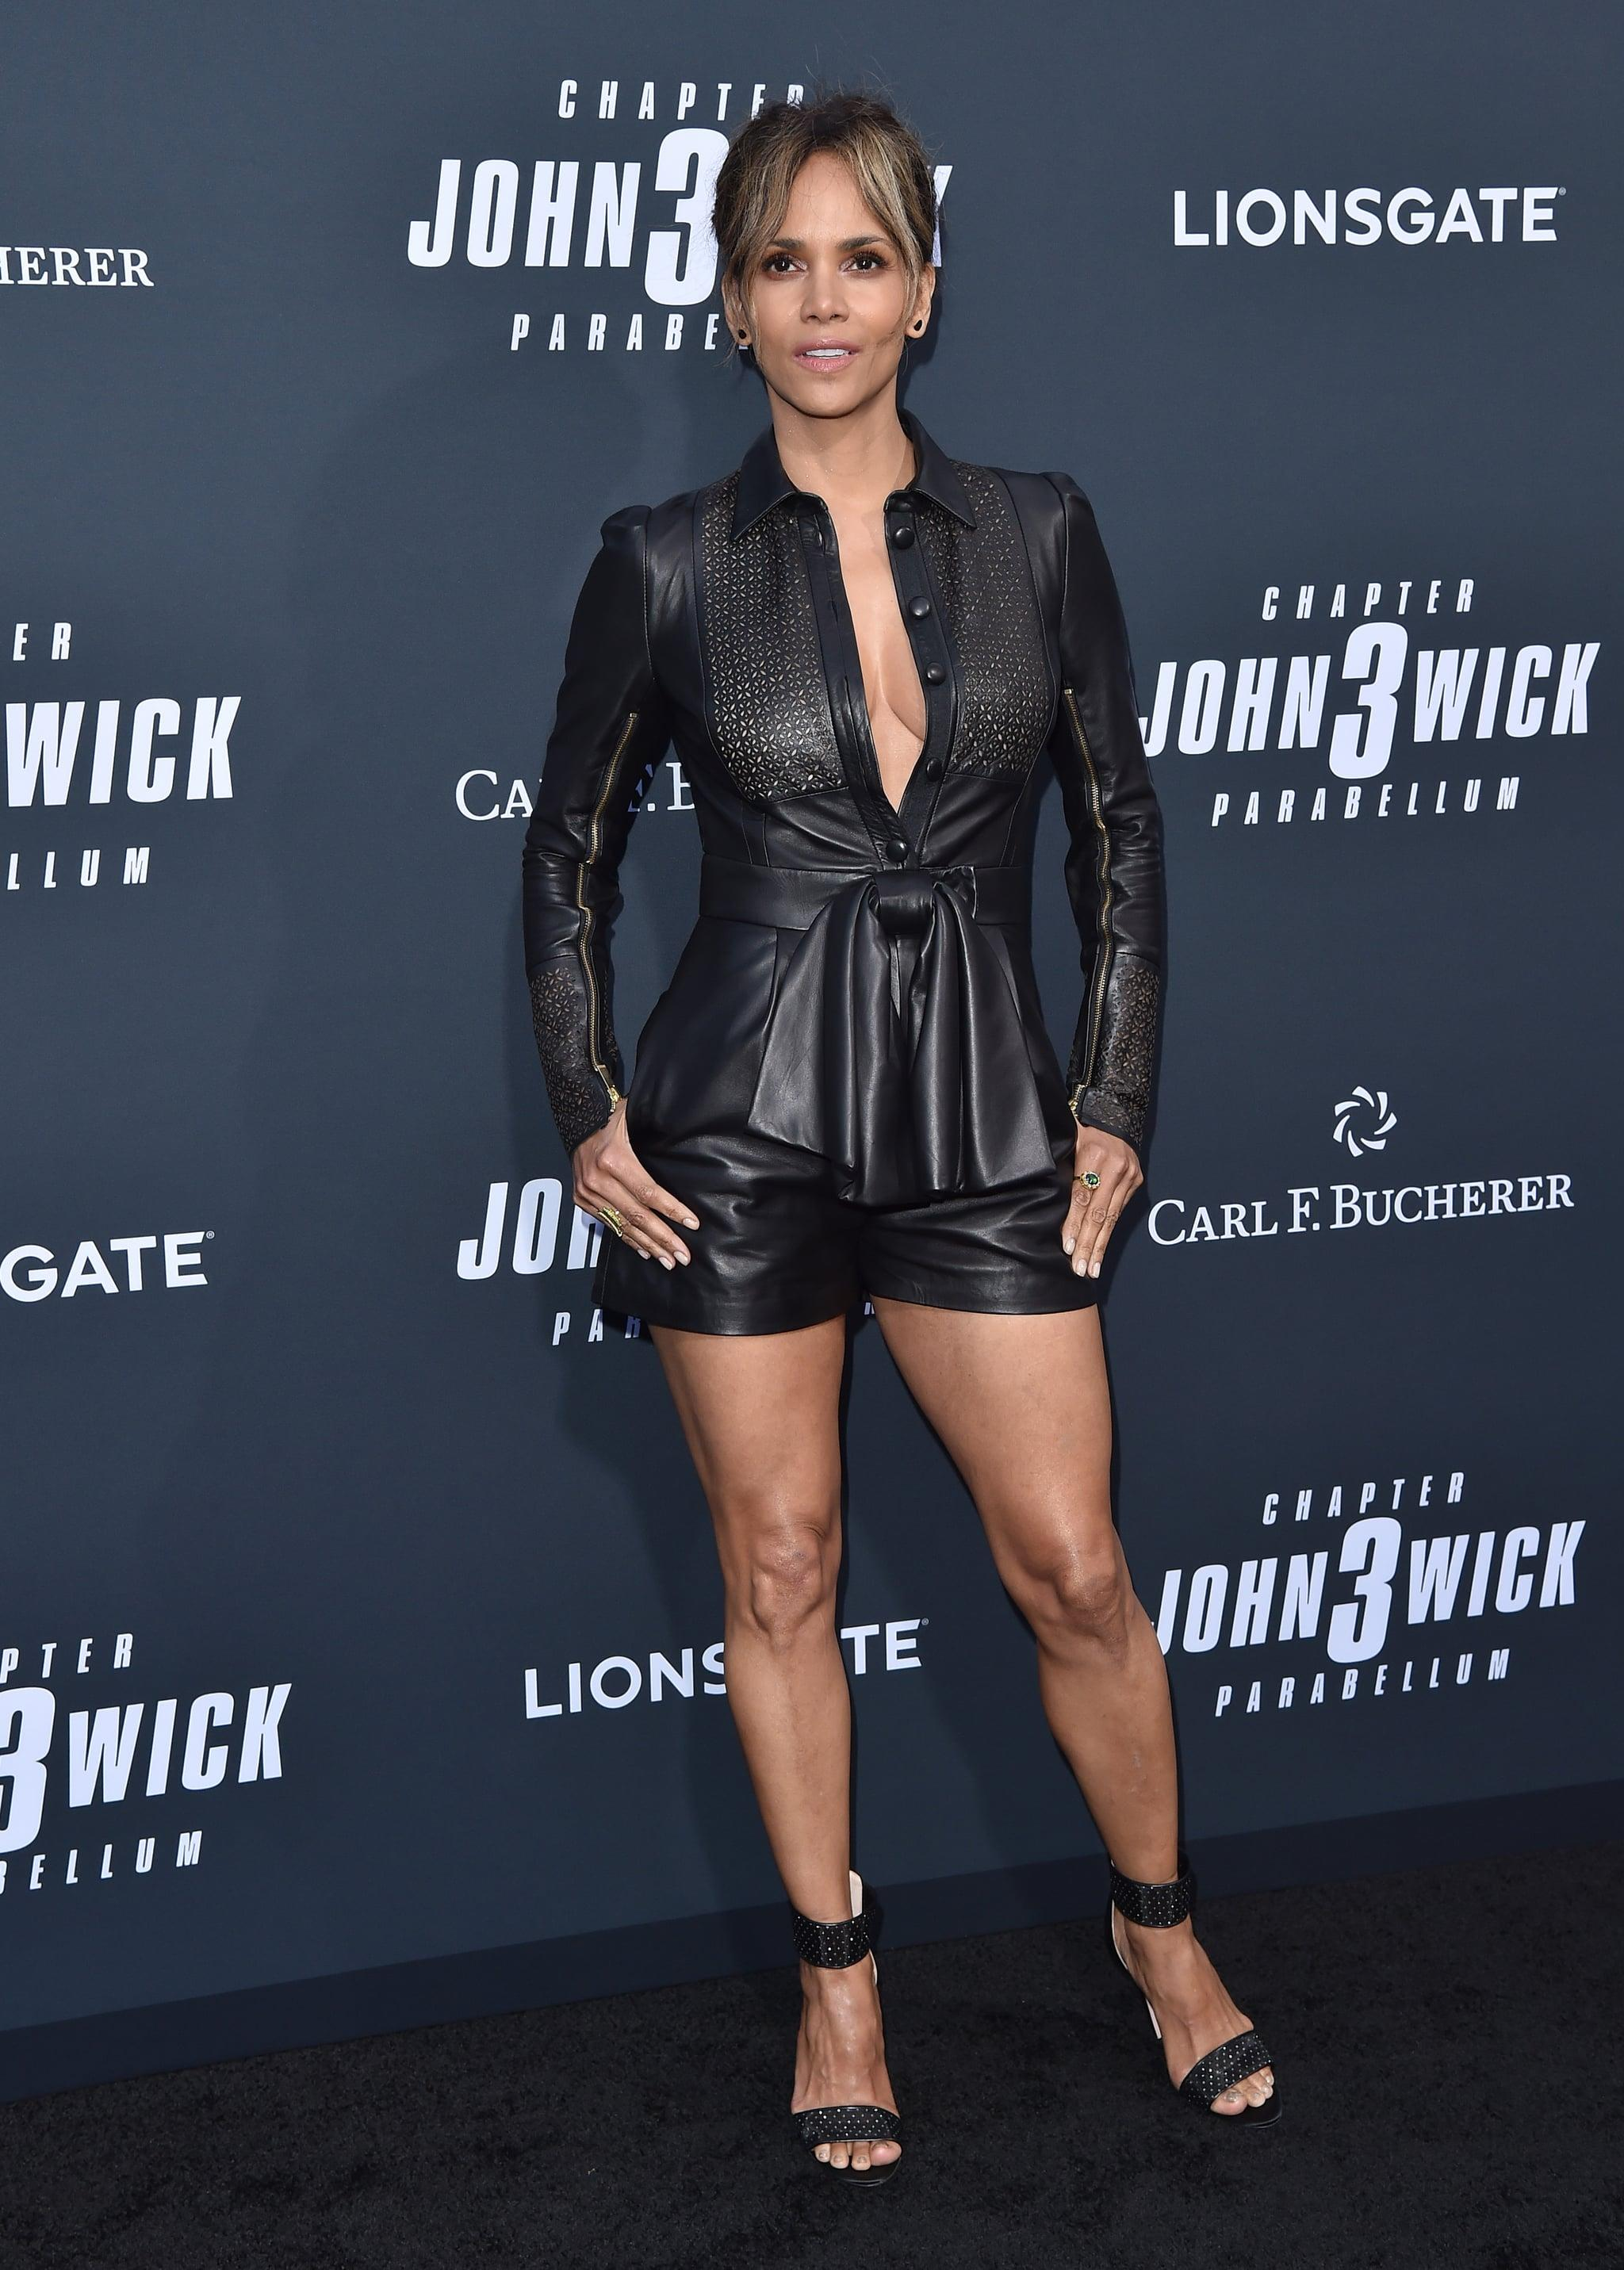 <p>She can pull off a leather set like it's nobody's business, as seen at the premiere of <strong>John Wick: Chapter 3</strong>.</p>